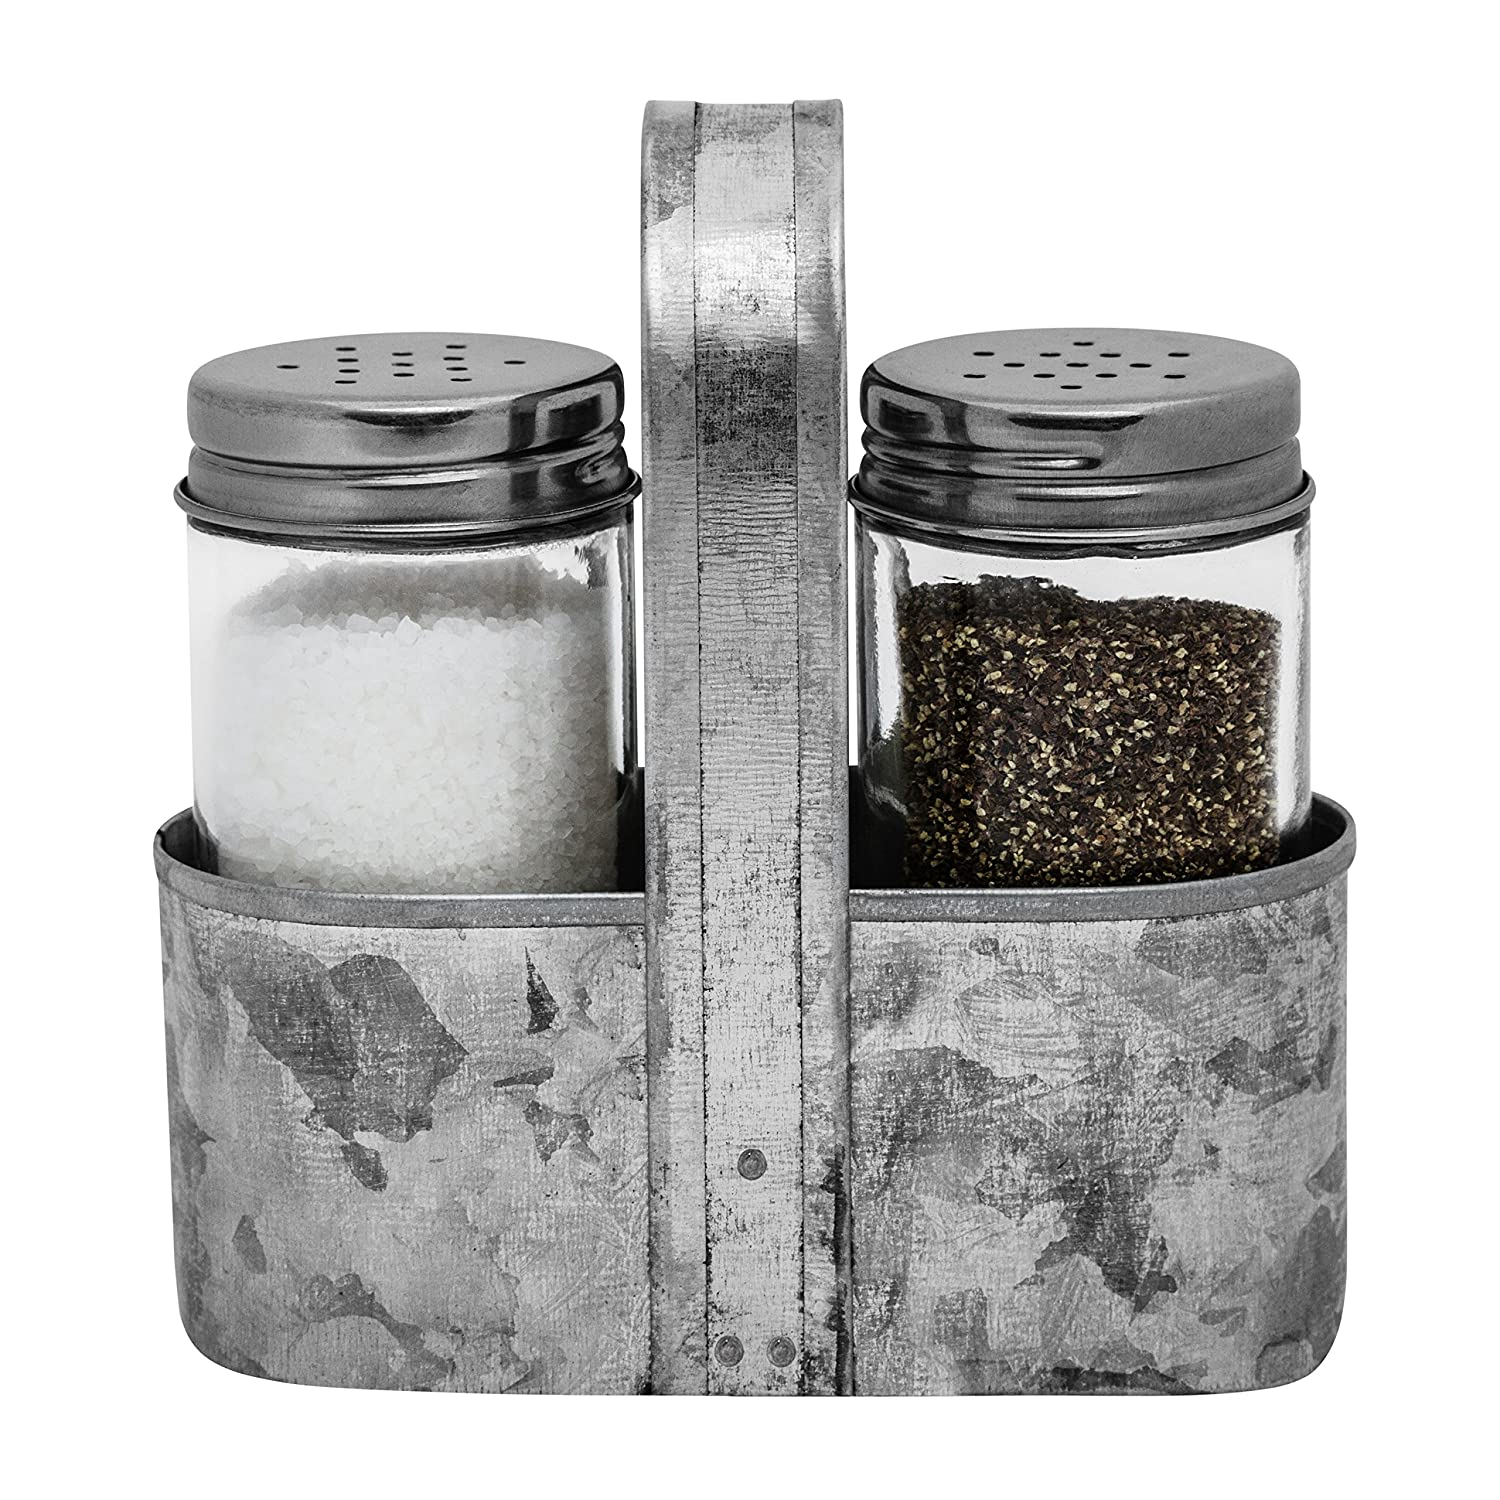 Farmhouse Salt and Pepper Caddy Set | Galvanized Decor, Rustic Weddings, Restaurants, Vintage Shabby Chic | 3-Piece Set | Easy to Clean, No-Mess Refilling